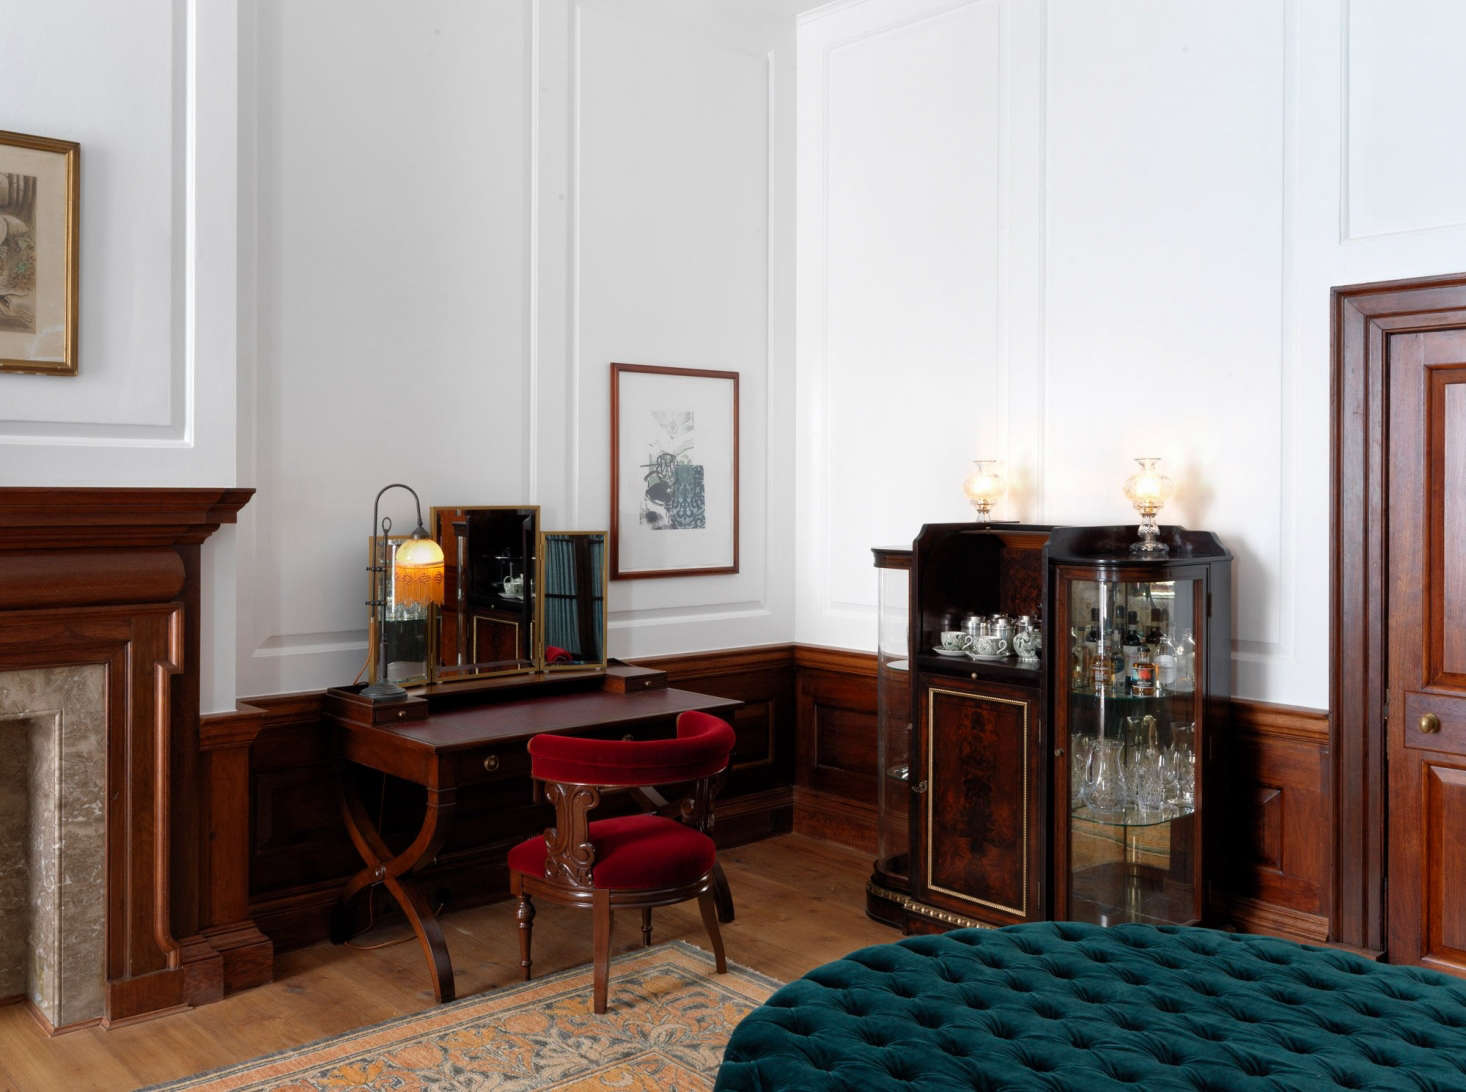 The Ned Hotel: A Stately London Landmark Transformed, English Vintage Edition